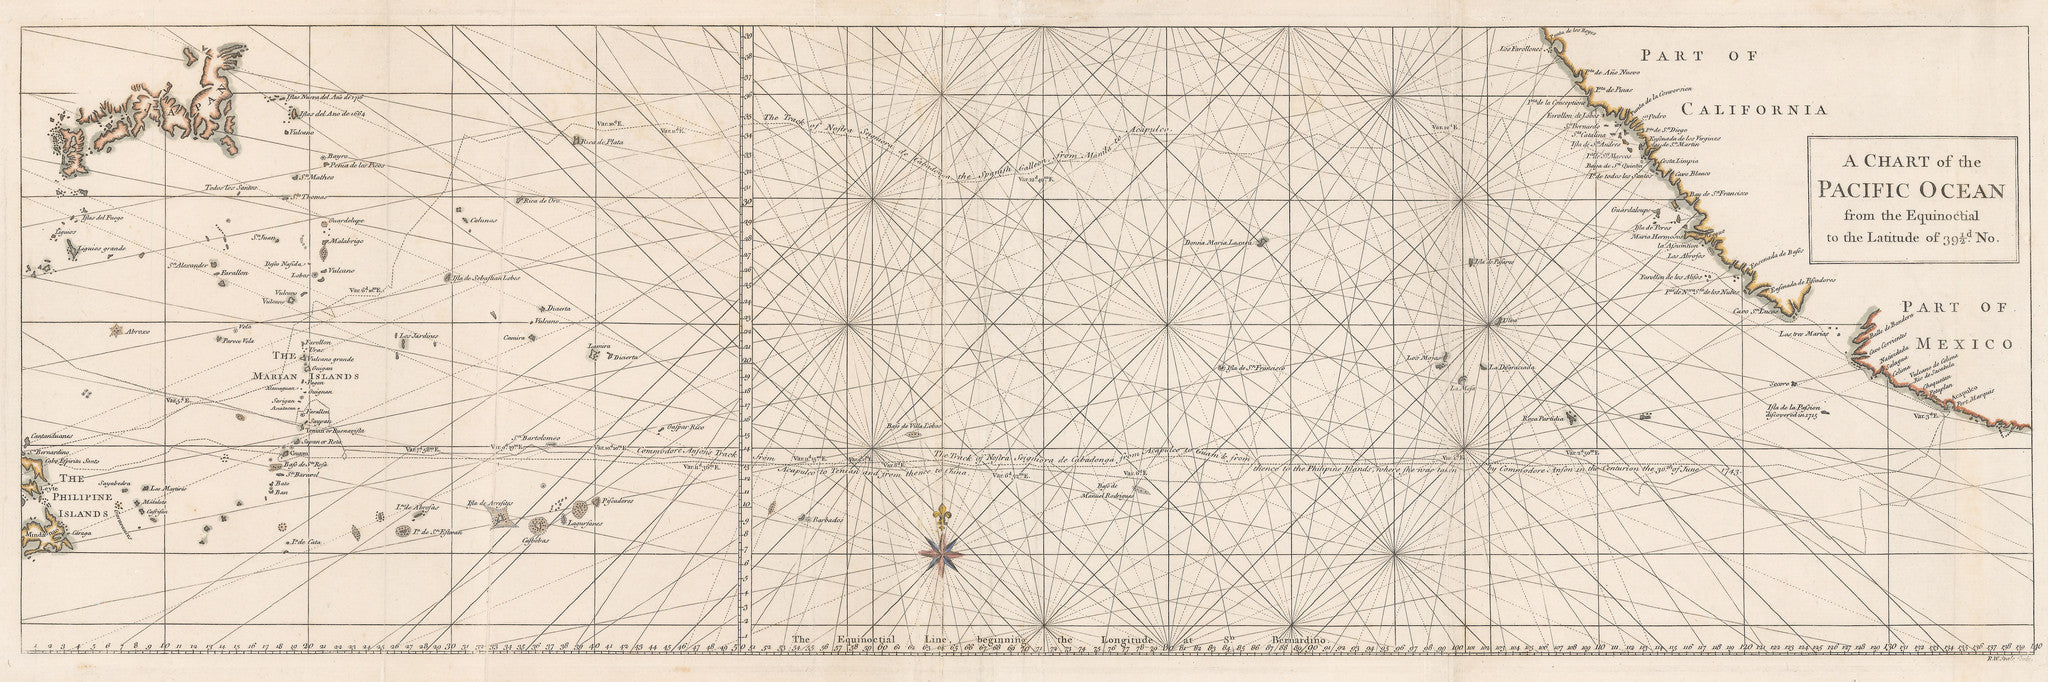 1748 A Chart of the Pacific Ocean from the Equinoctial to the Latitude of 39 1/2d. No.